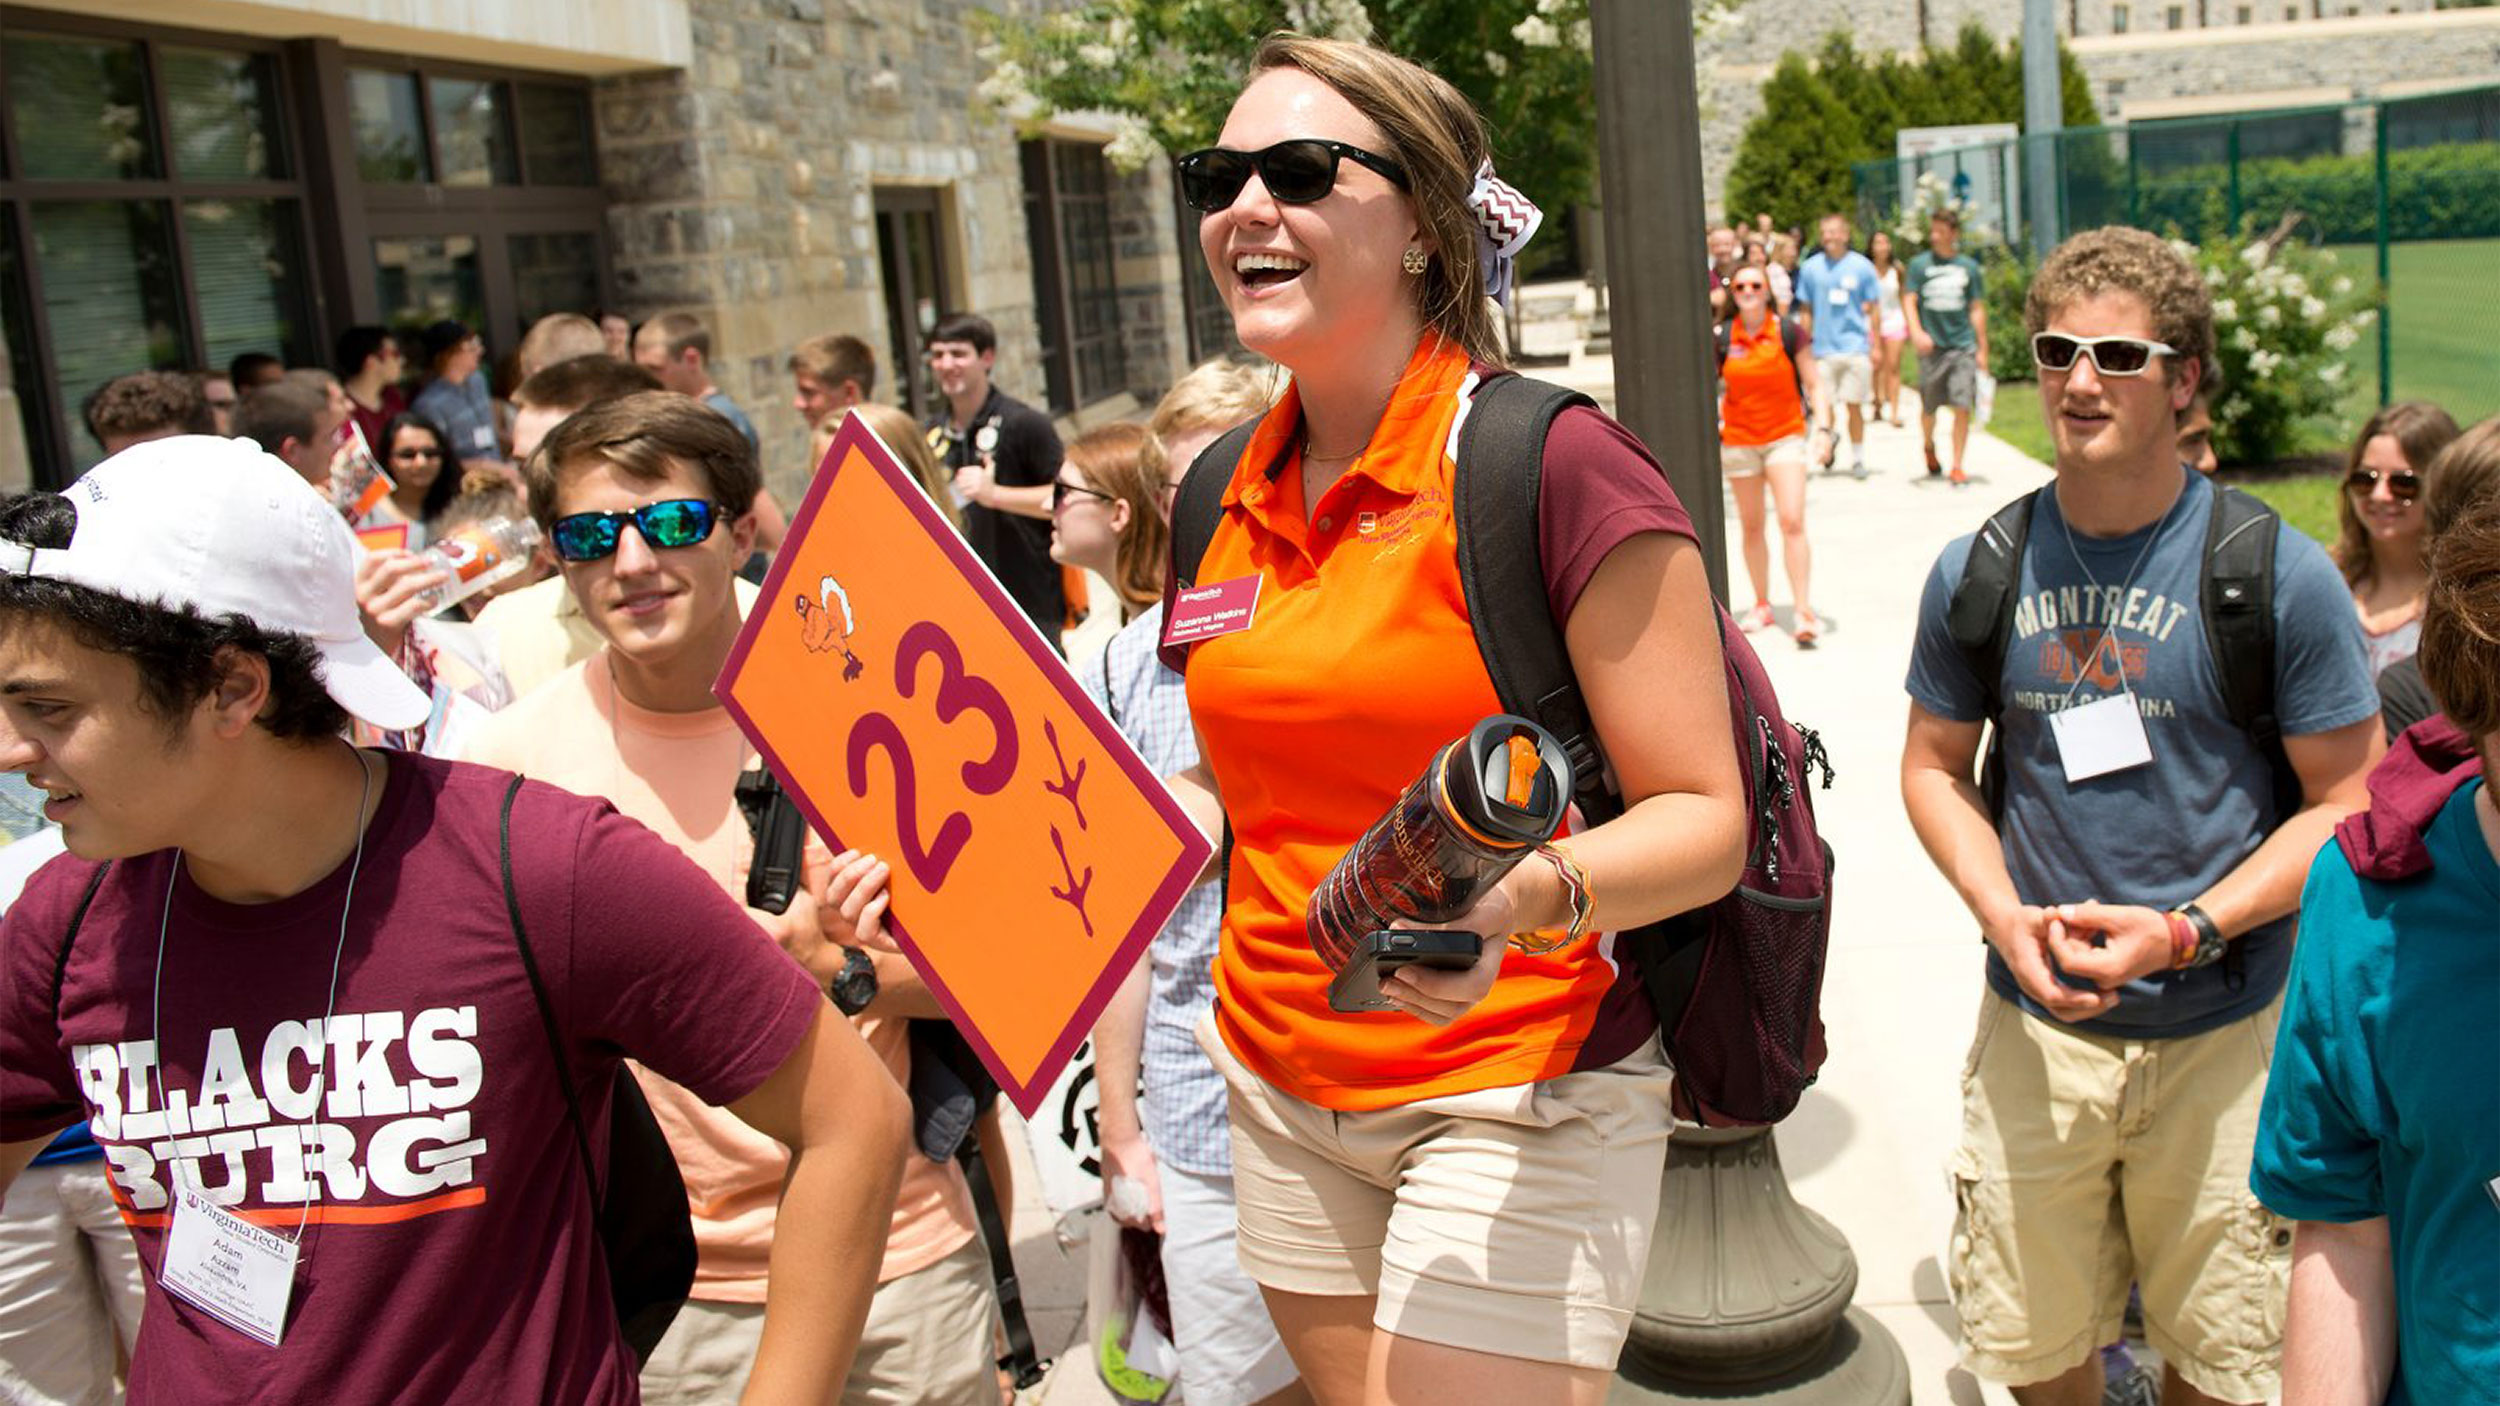 Orientation at Virginia Tech